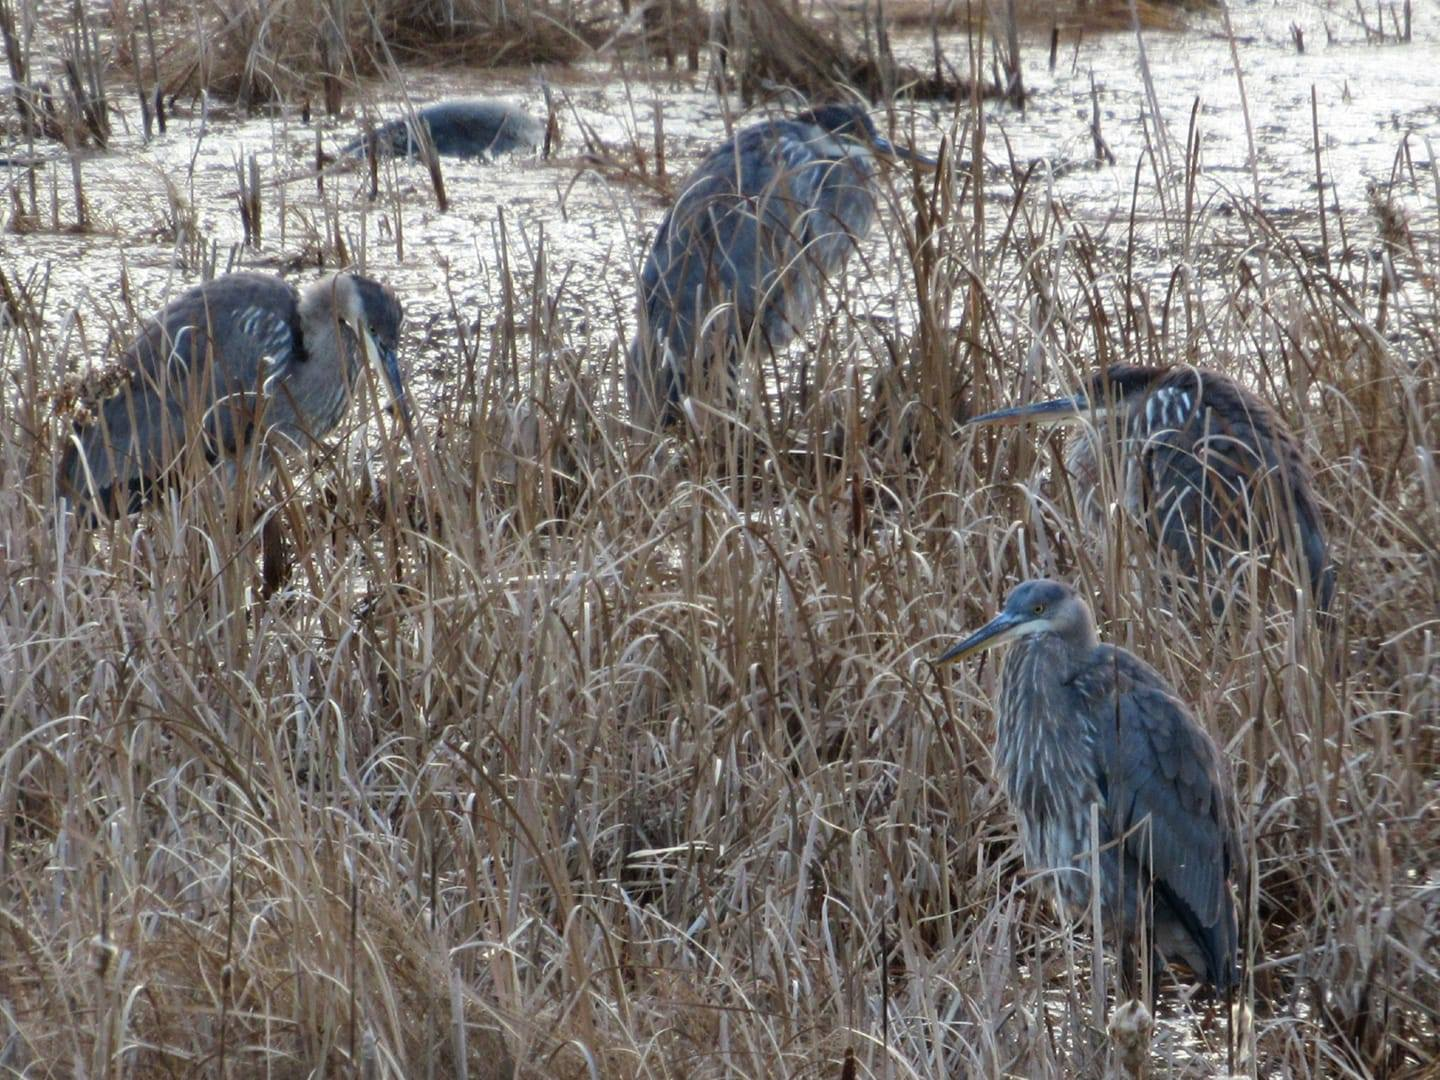 From Danielle D'Auria's MDIFW blog:  These four juvenile Great Blue Herons were spotted in Damariscotta on December 6th. The photographer, Stacey Keefer, said there was also a fifth with this bunch.